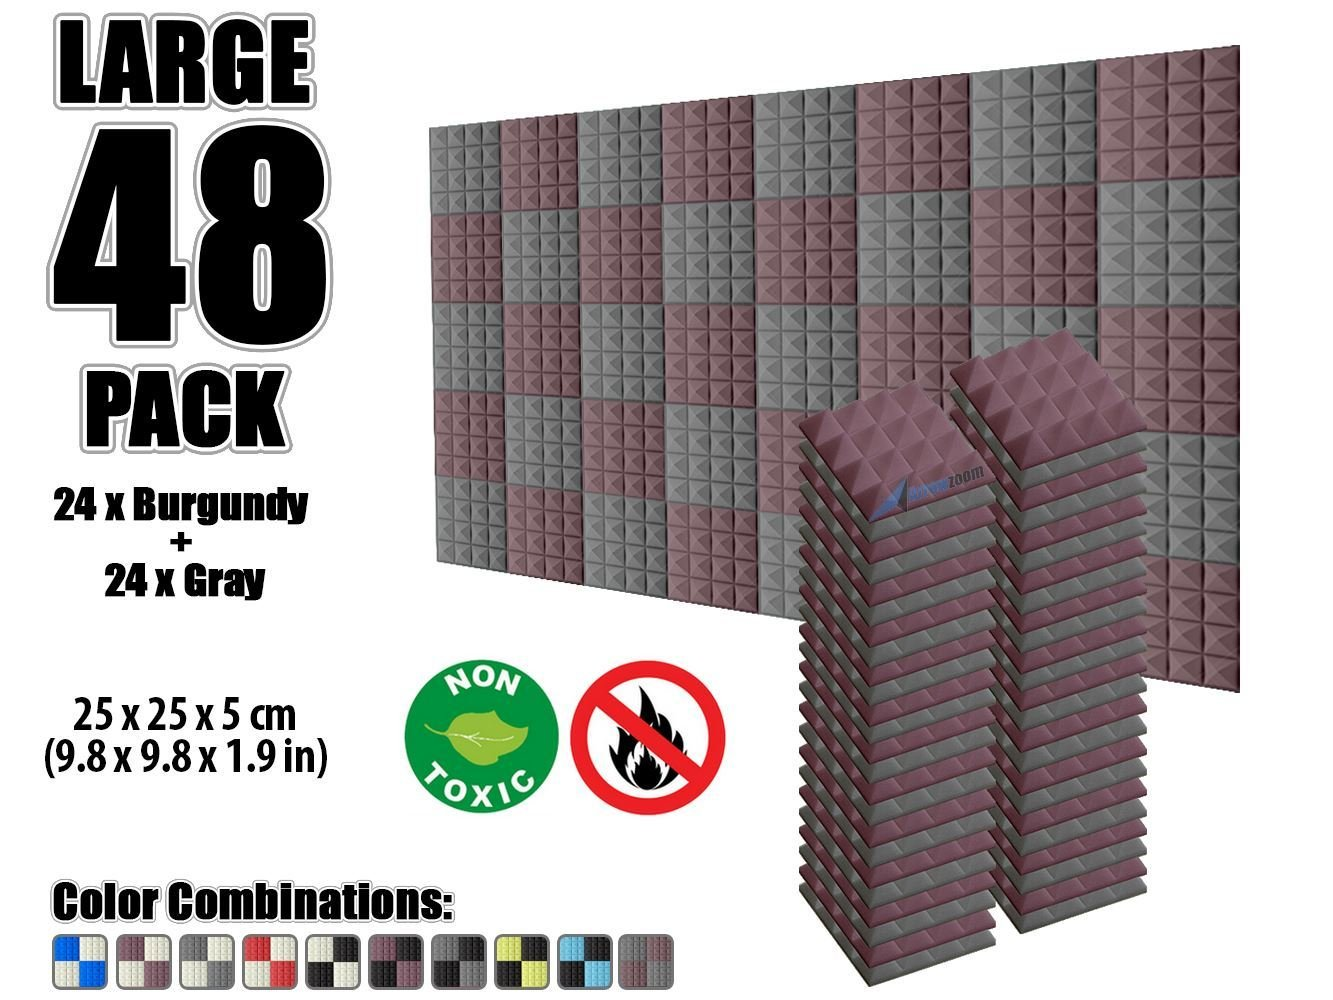 Arrowzoom New 48 Pack of 25 X 25 X 5 cm Soundproofing Pyramid Acoustic Foam Studio Absorbing Tiles Pads Wall Panels AZ1034 (BLACK & BURGUNDY)